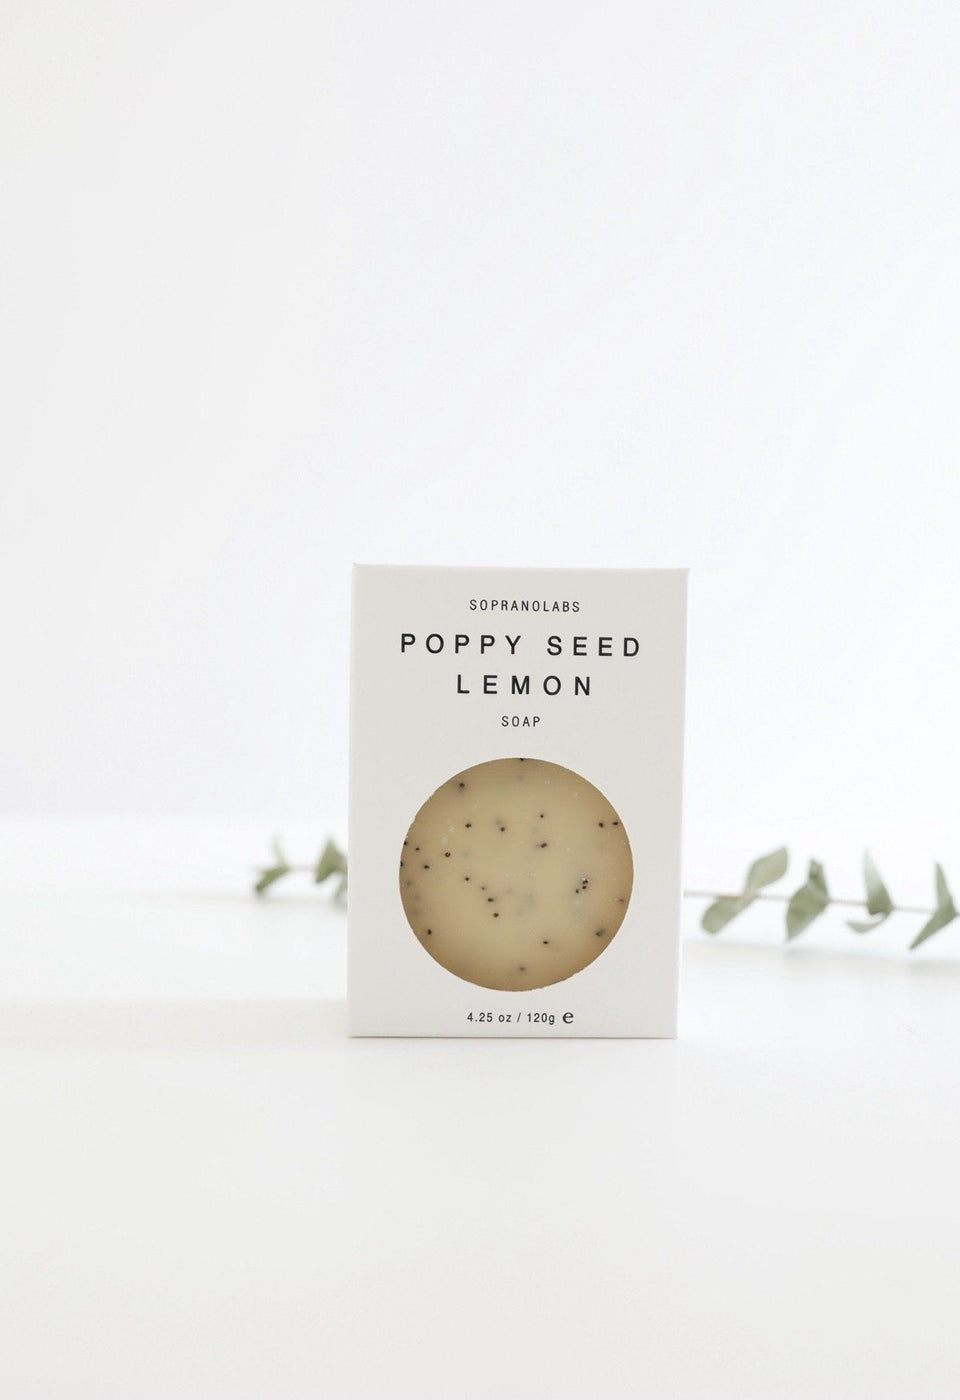 POPPY SEED LEMON Vegan Soap. Gift for her/him